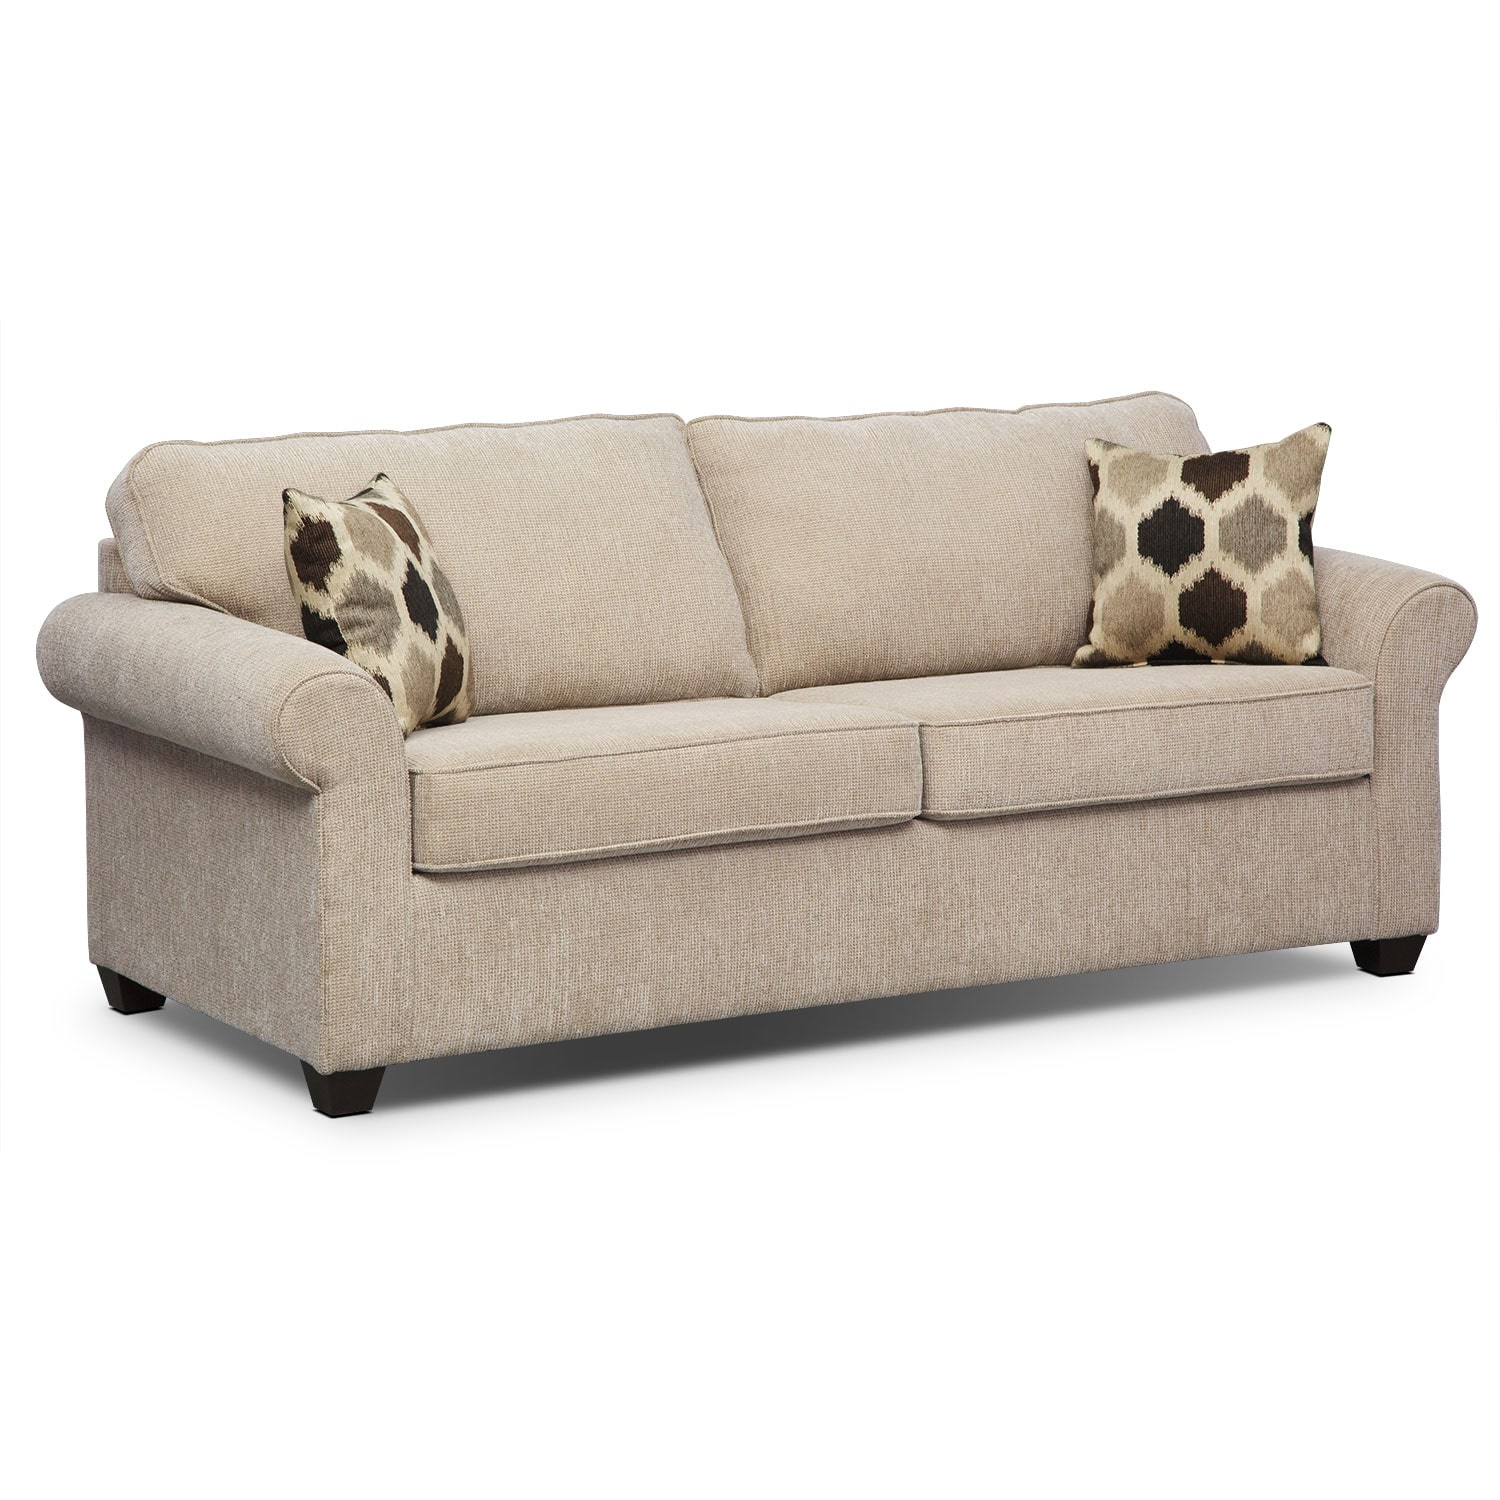 Fletcher Queen Memory Foam Sleeper Sofa Beige American Signature Furniture